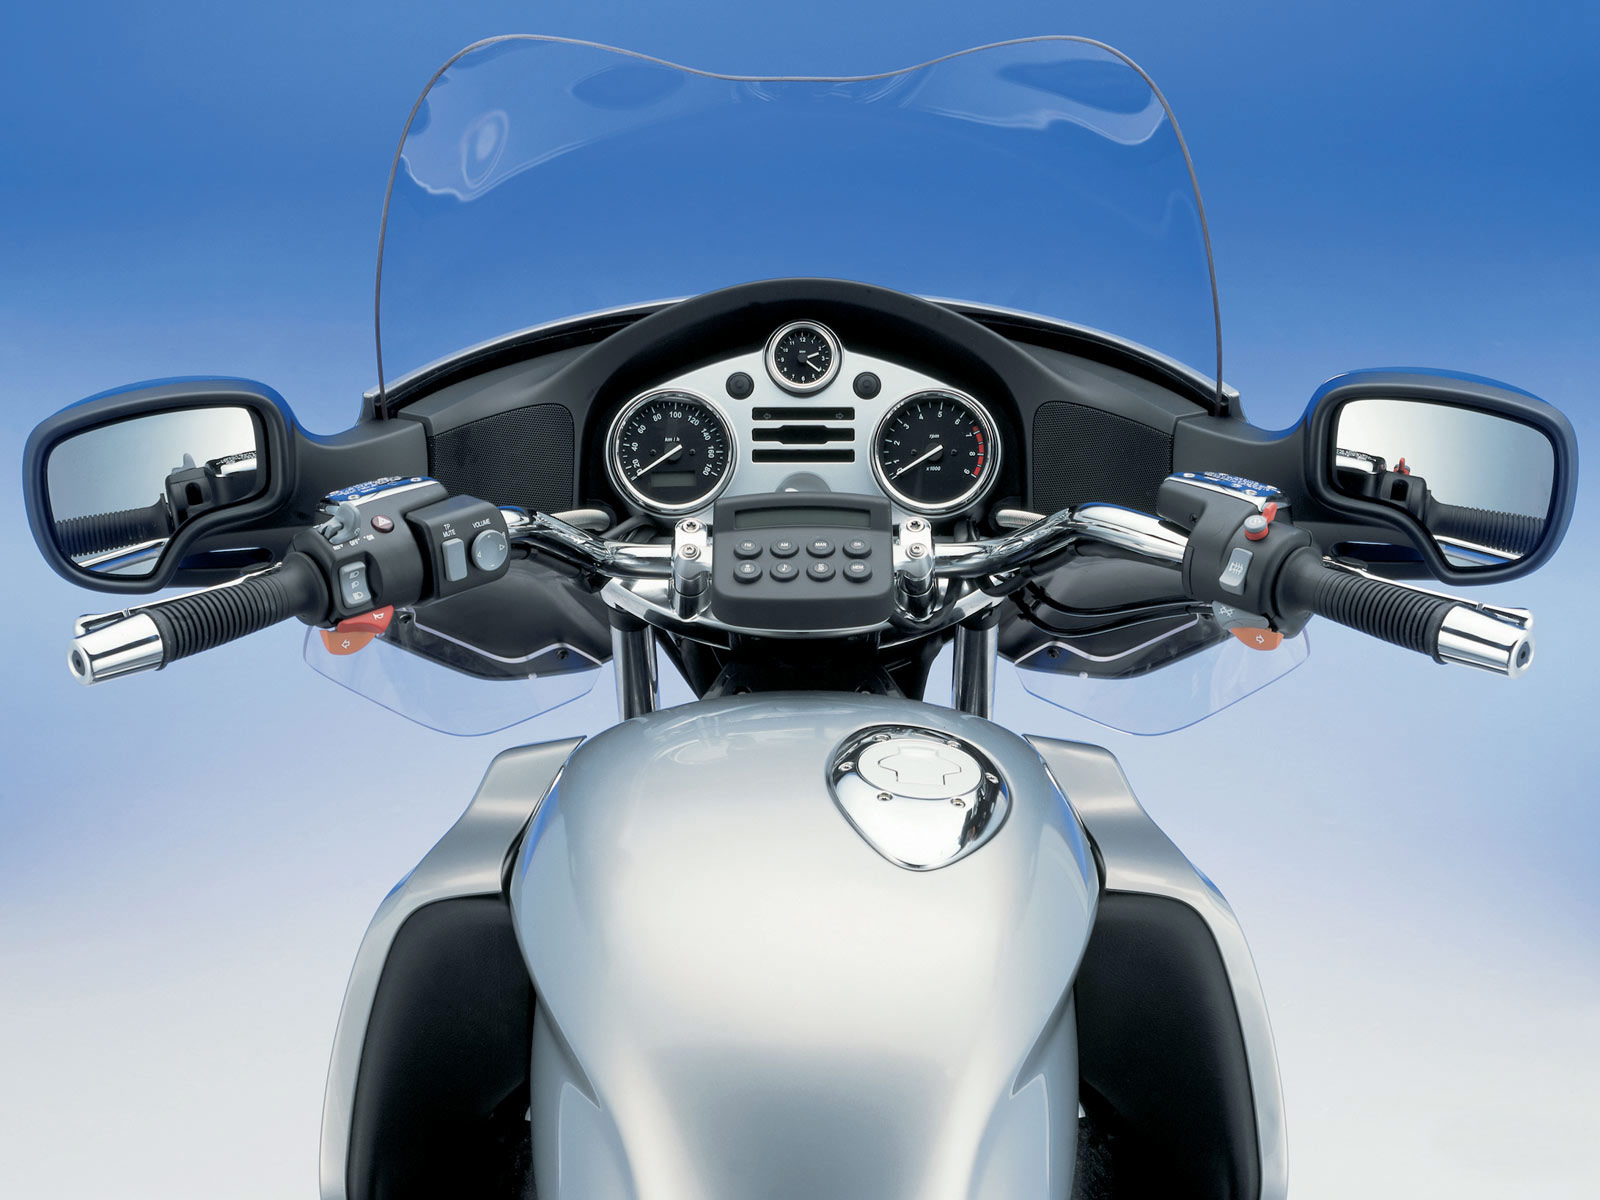 2002 Bmw R1200cl Insurance Information